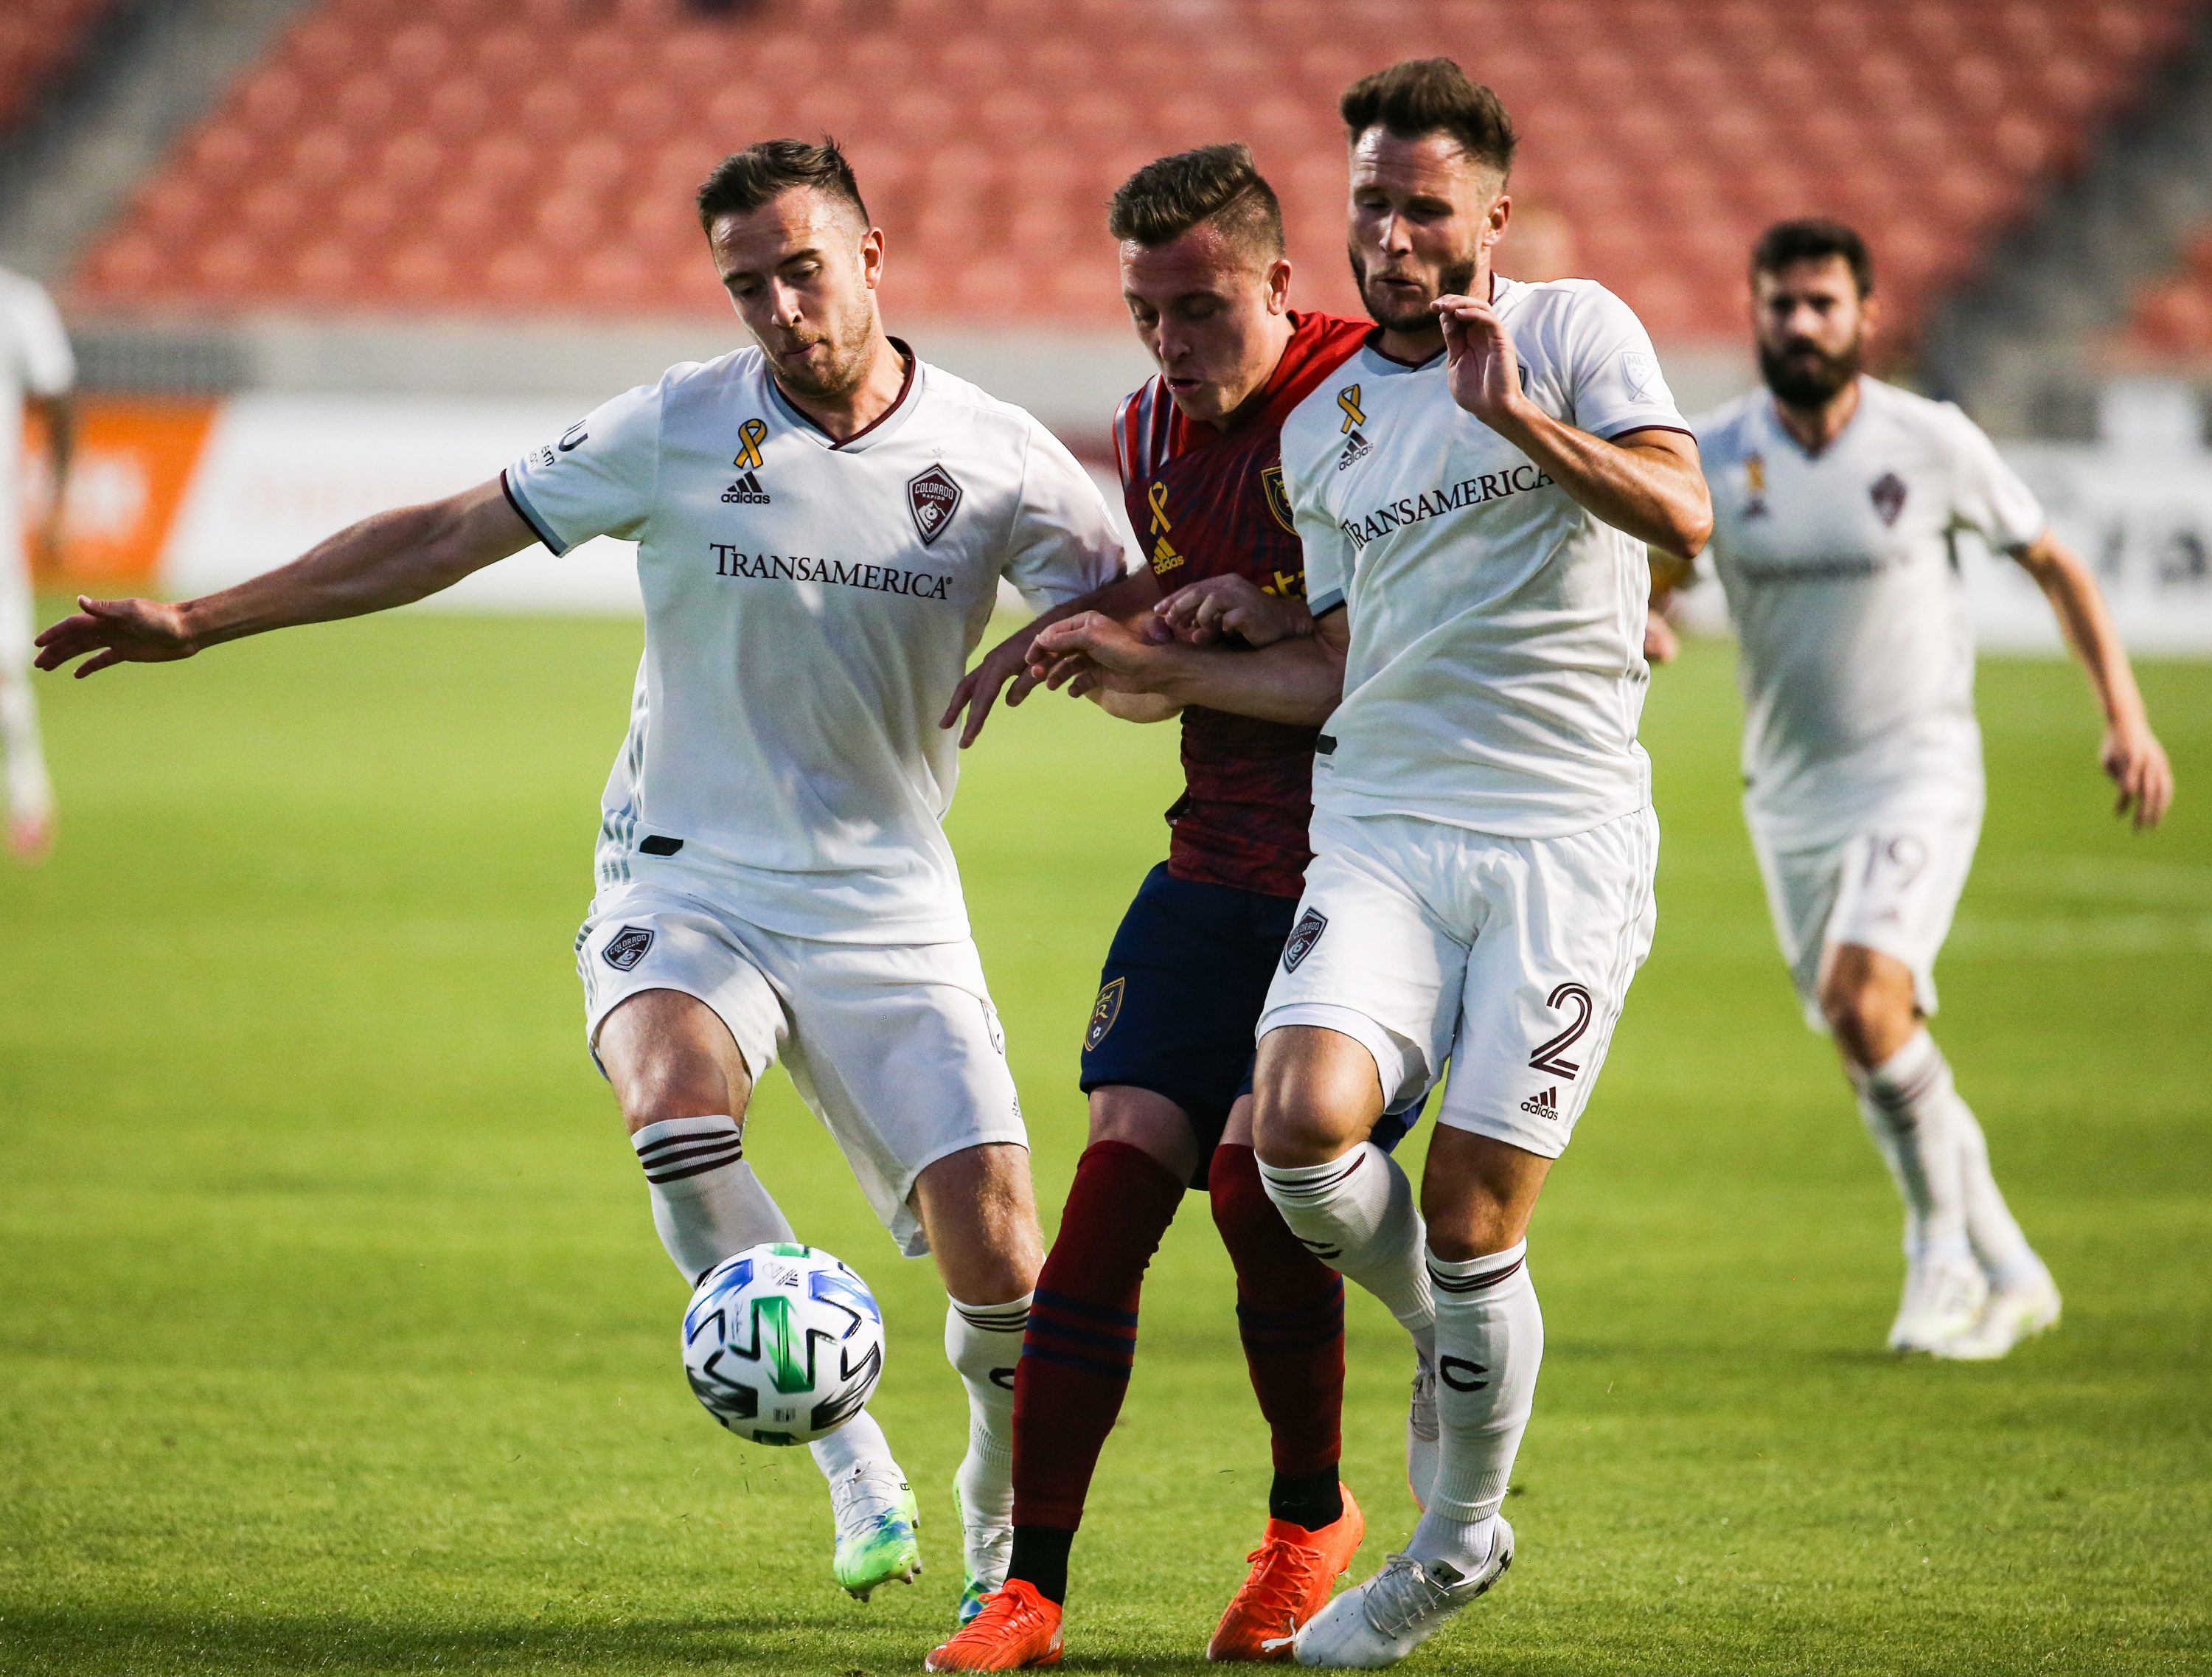 Colorado Rapids defender Danny Wilson (4) and defender Keegan Rosenberry (2) attempt to stop Real Salt Lake forward Corey Baird (10) during an MLS soccer game at Rio Tinto Stadium in Sandy on Saturday, Sept. 12, 2020.